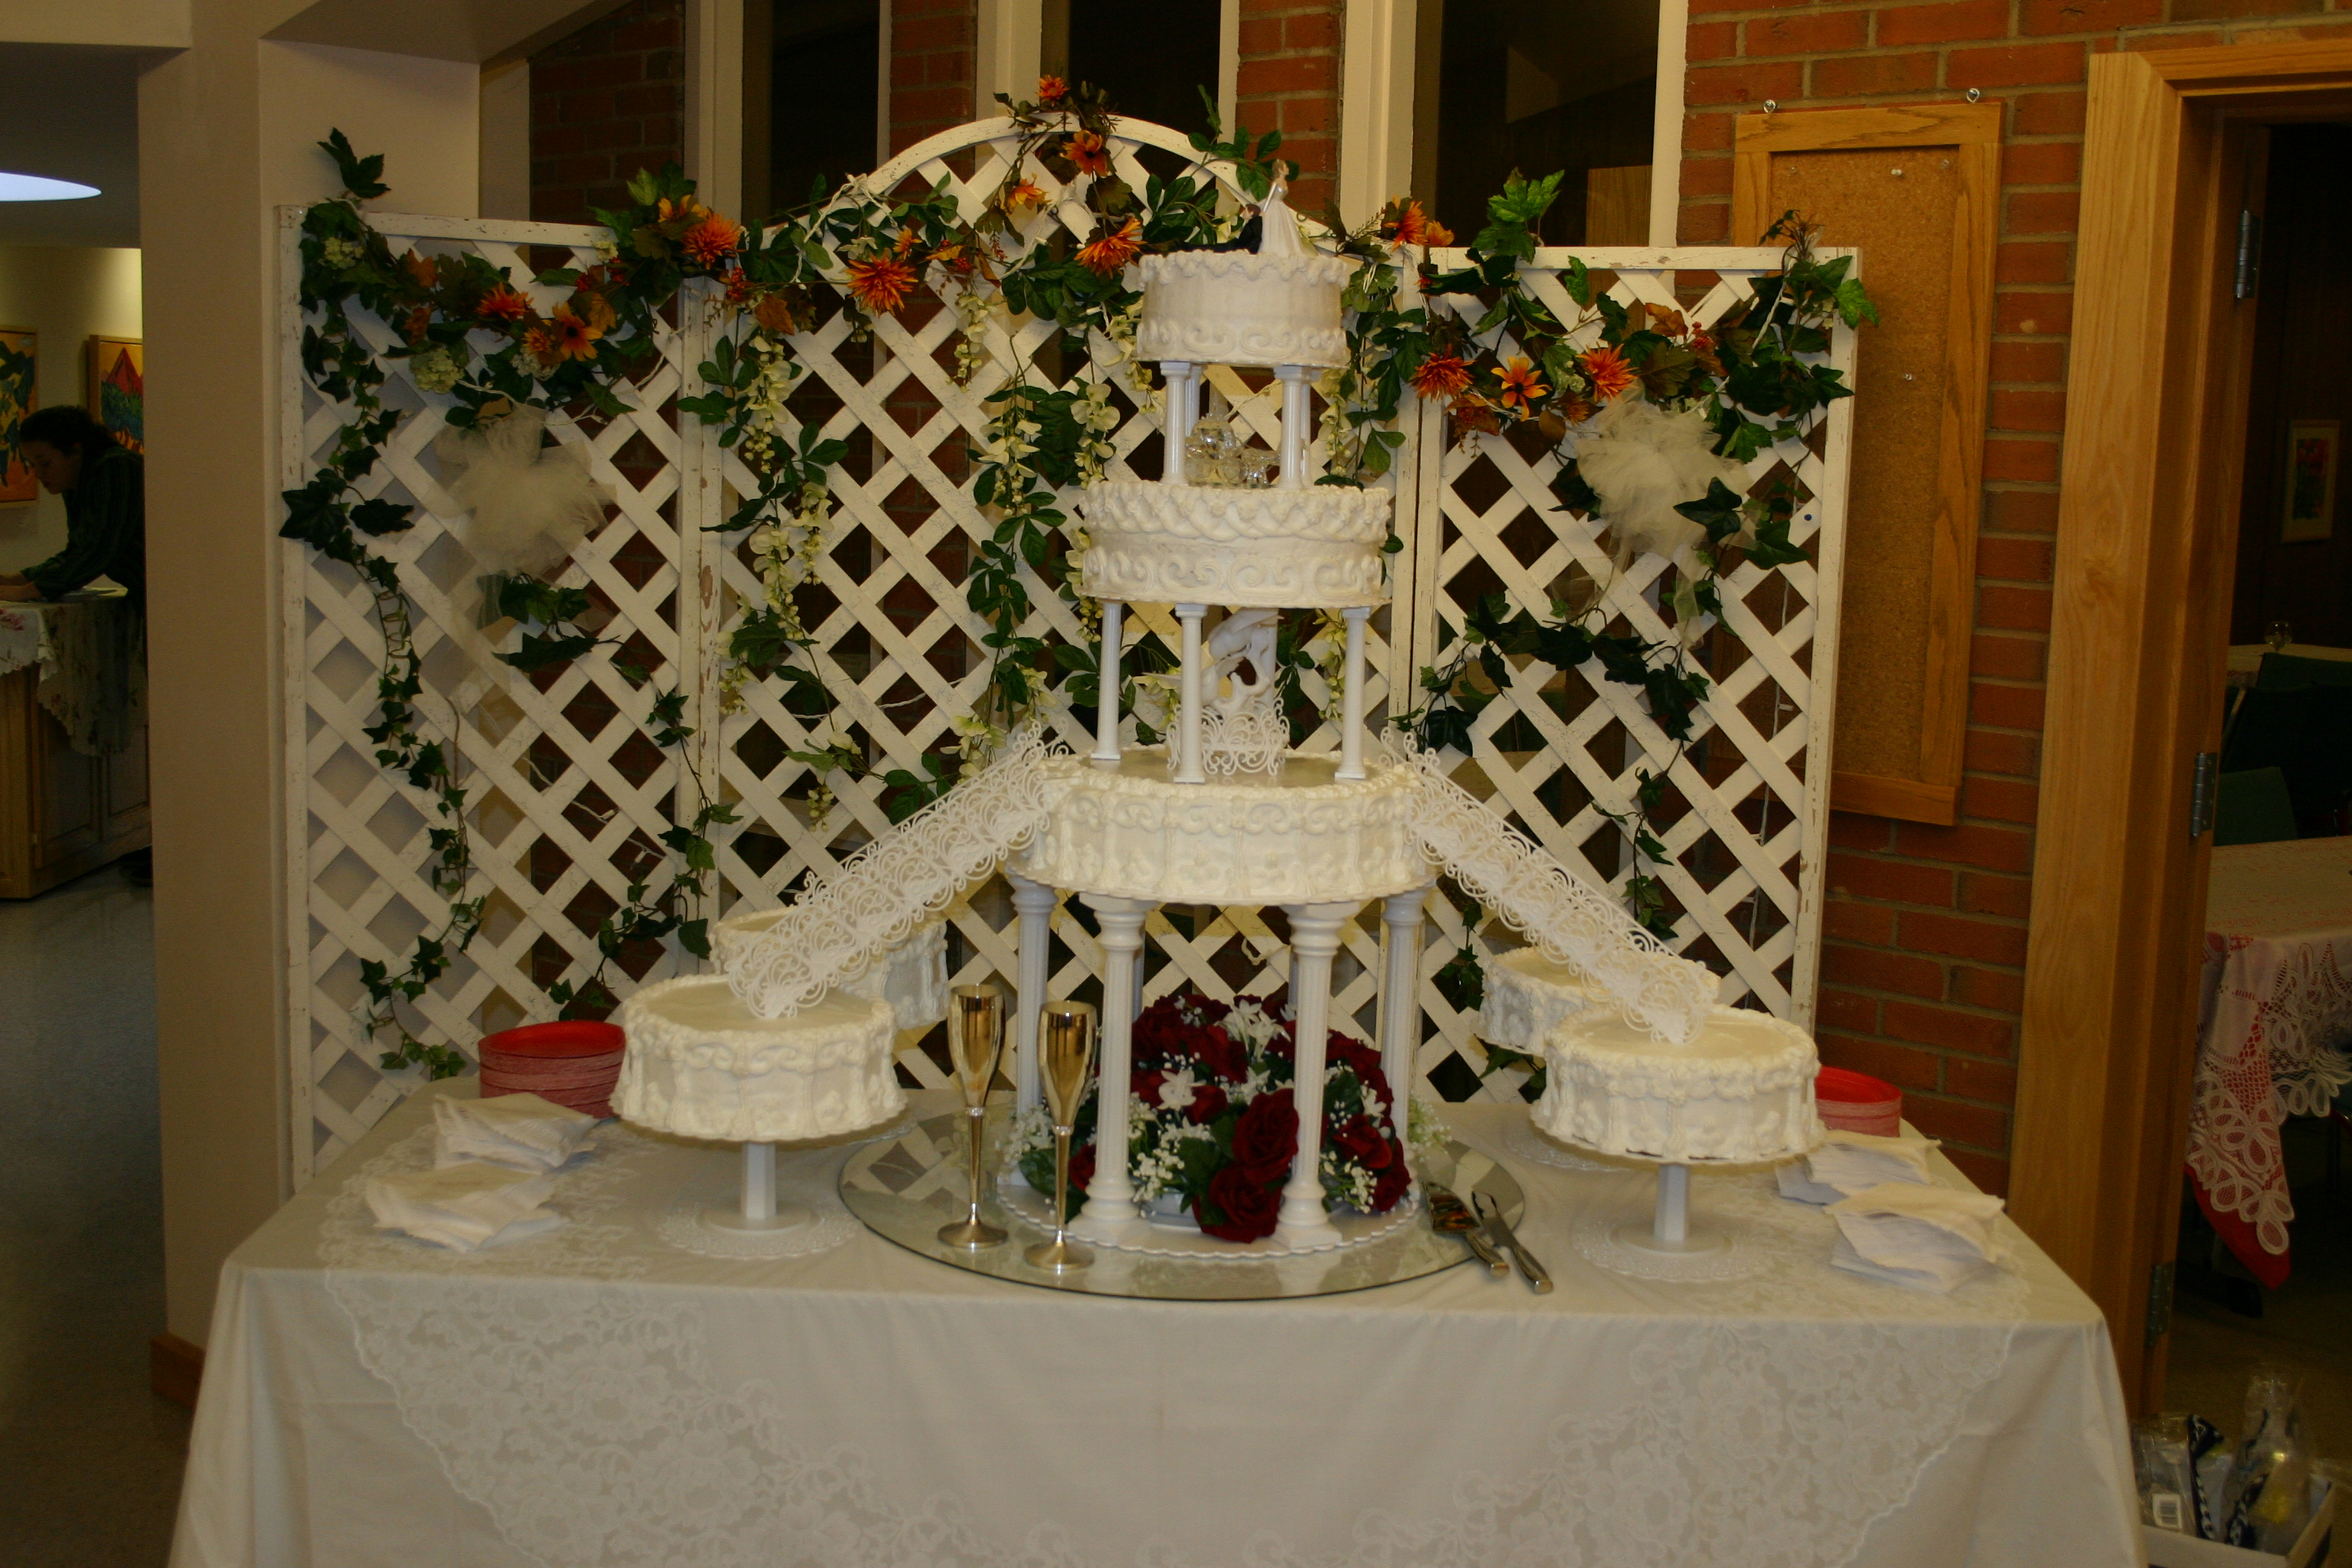 7 Tier round with satallite cakes and staircases